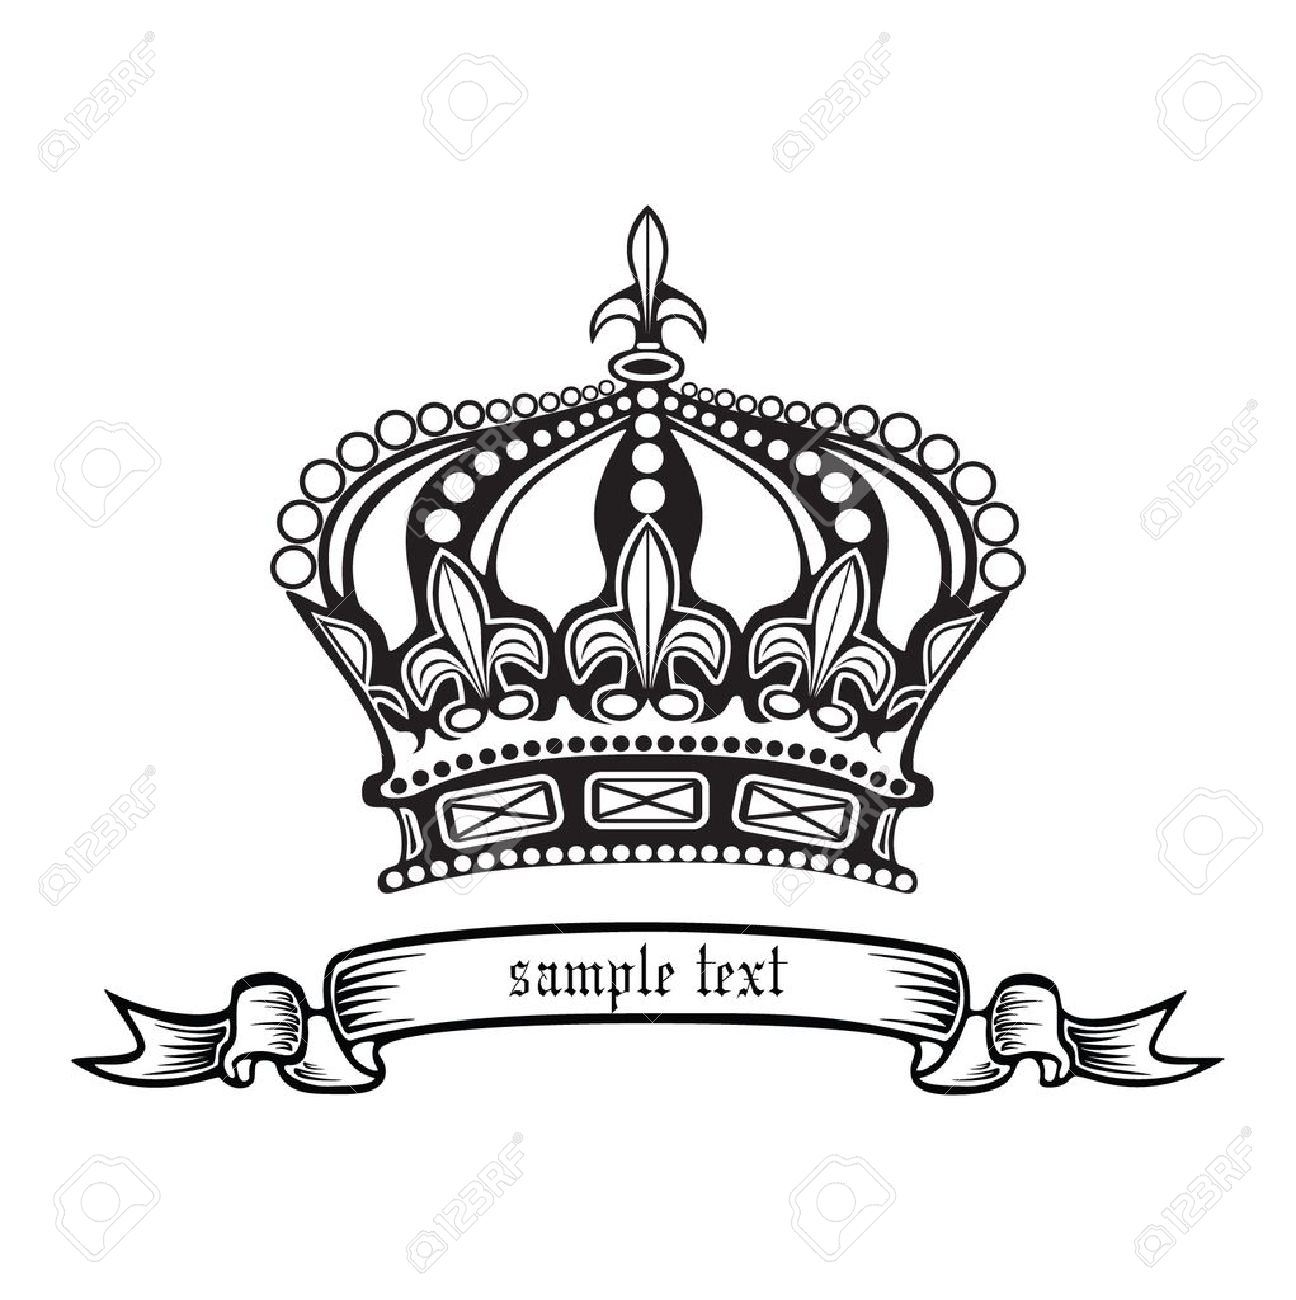 king and queen crowns together clipart #4